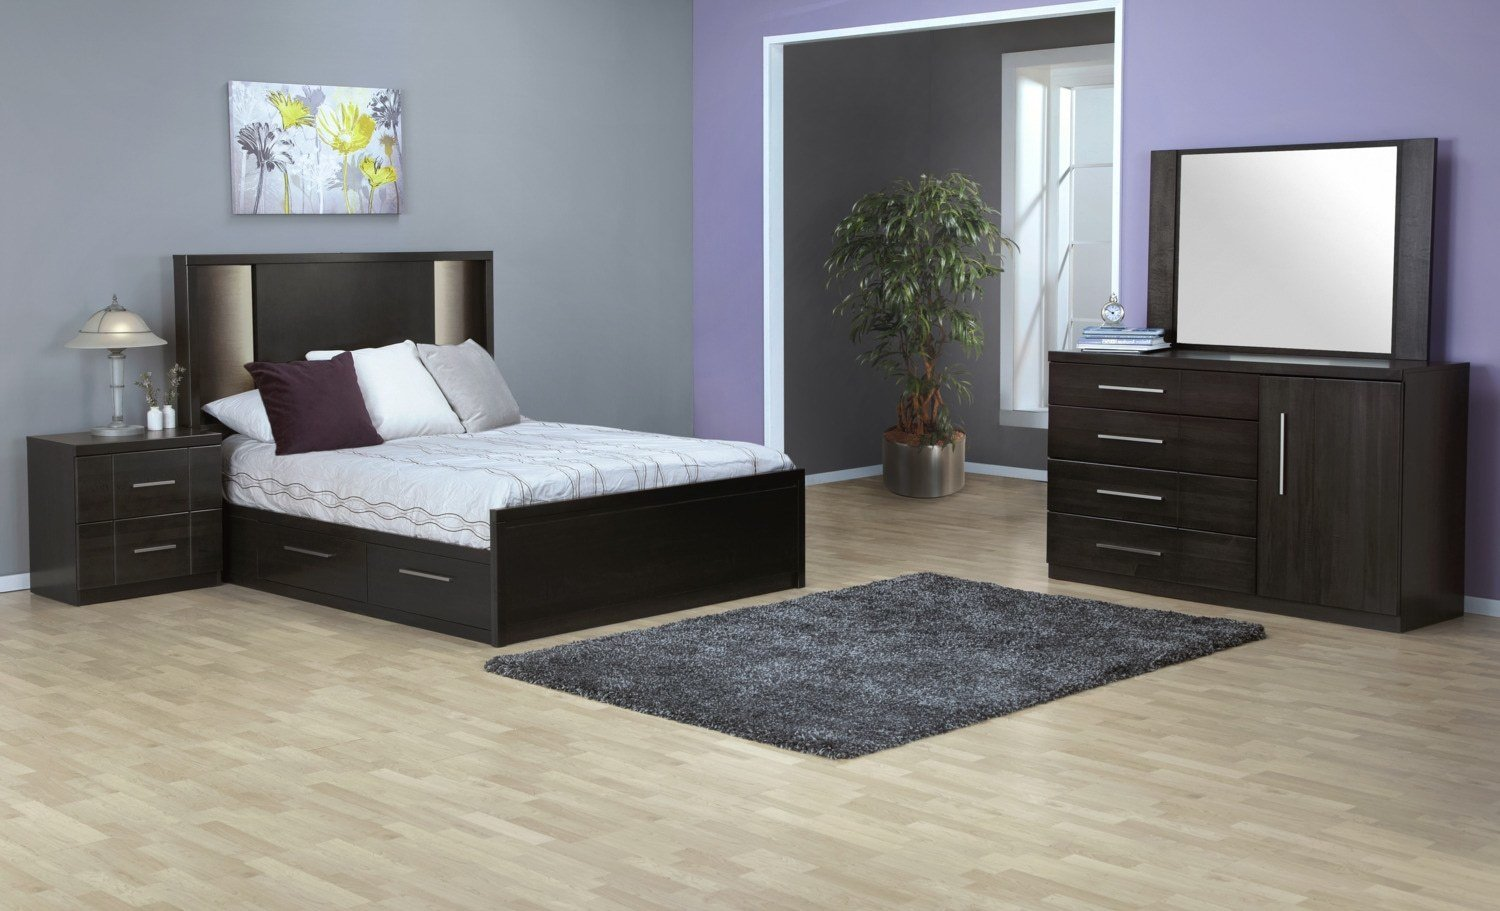 Best Seville 7 Piece Queen Storage Bedroom Set Charcoal Leon S With Pictures